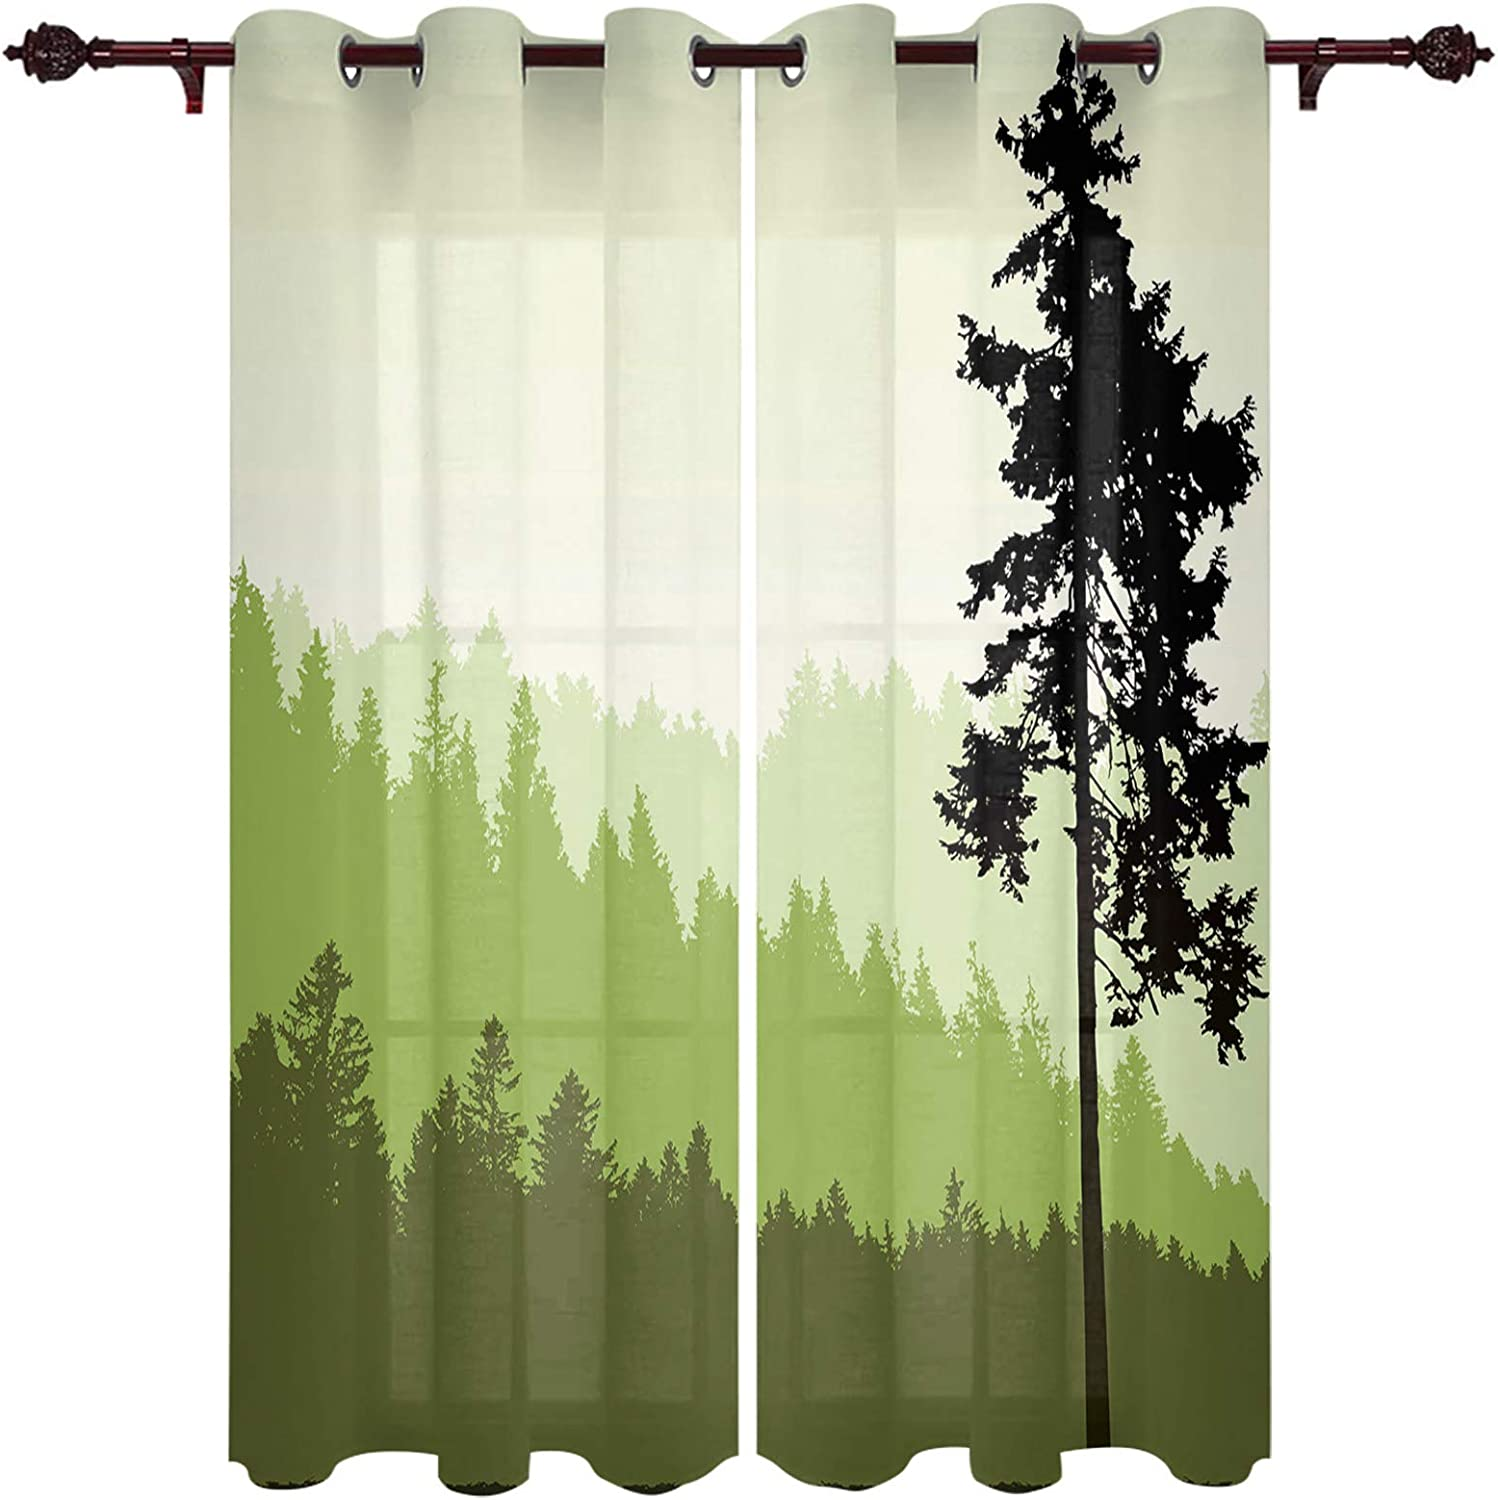 Curtains for Living Room low-pricing 63 Inch Length Drapes a Tree Pine Wind National products